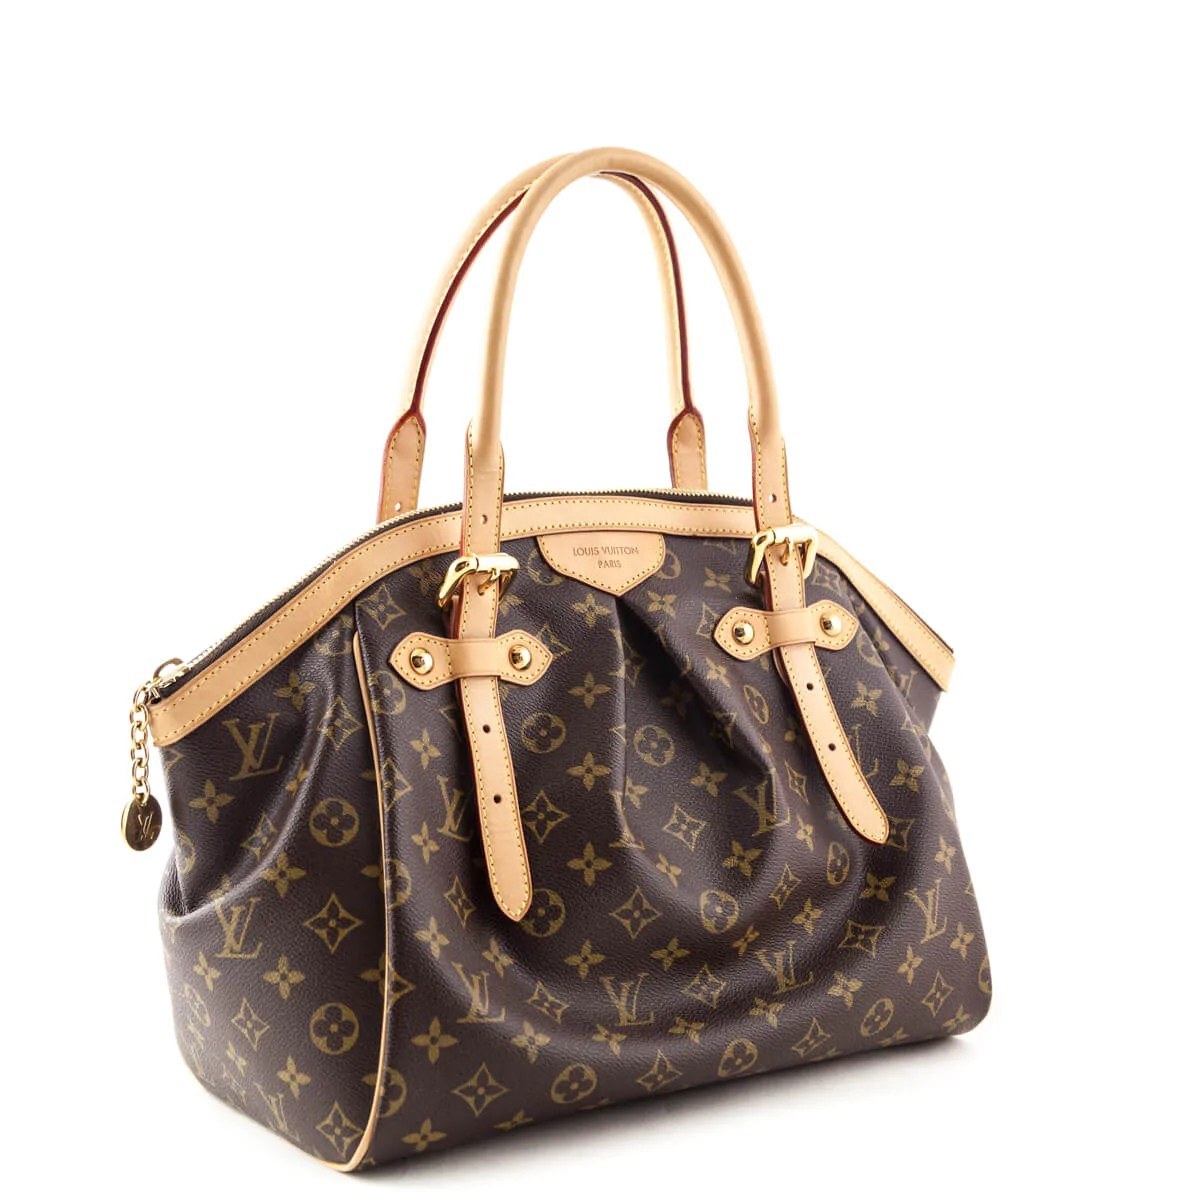 Tivoli Gm Louis Vuitton Monogram Tivoli Gm